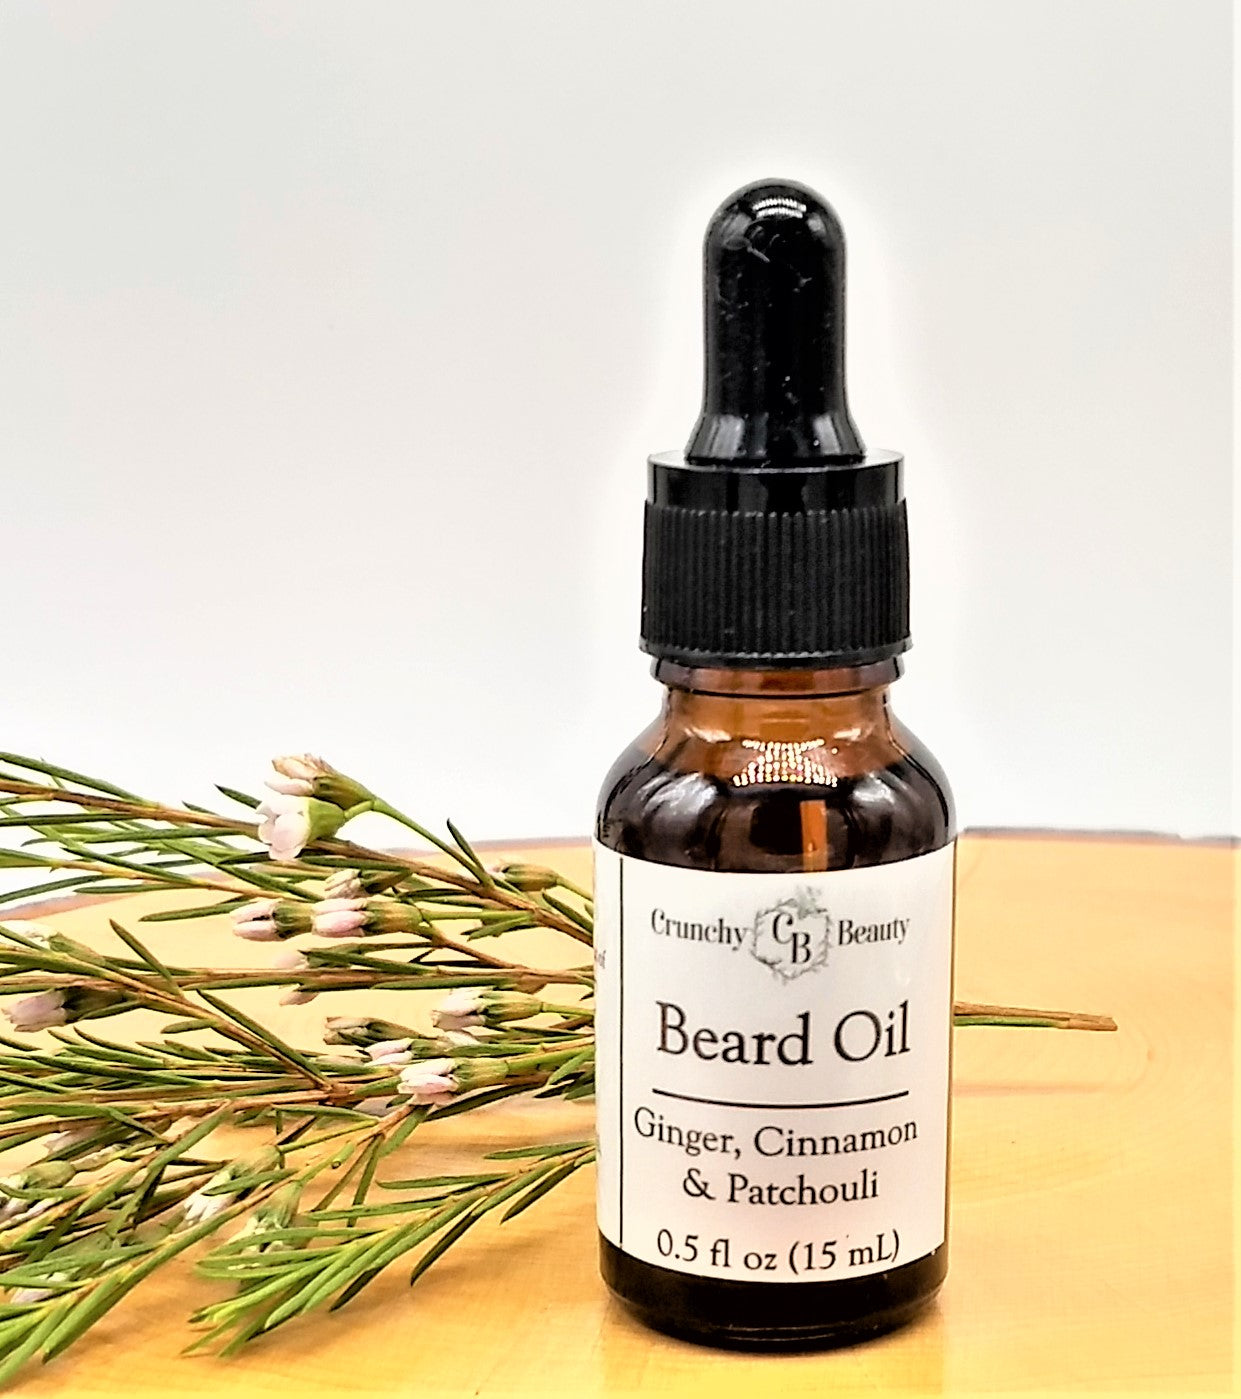 Beard Oil - Ginger, Cinnamon & Patchouli